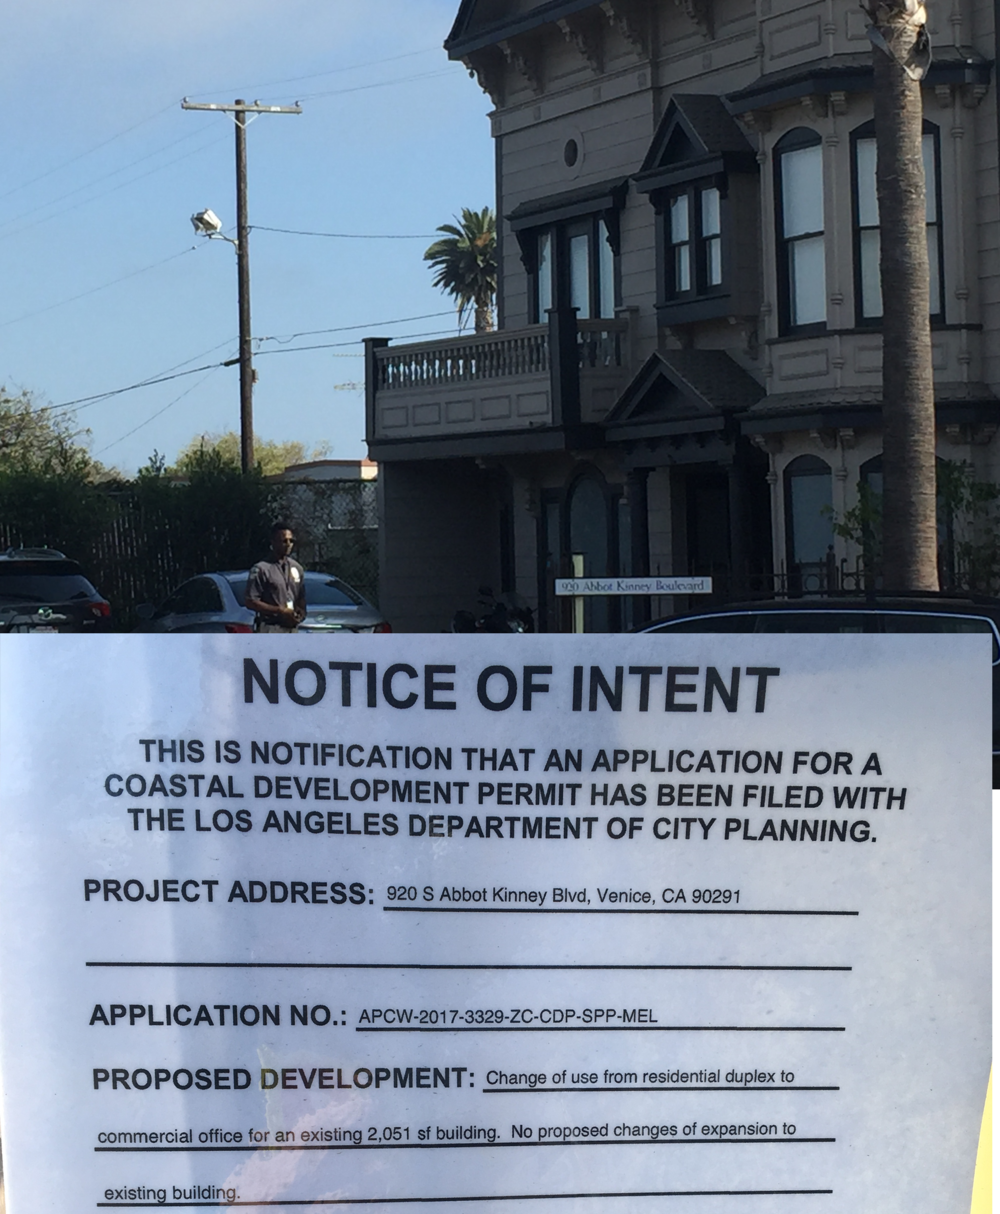 They illegally reside in residences - They're illegally residing at 920 S Abbot Kinney. The building is zoned for residential use not commercial office use. In order to stay there the landlord is asking the Coastal Commission to change the use of the property from residential to commercial.